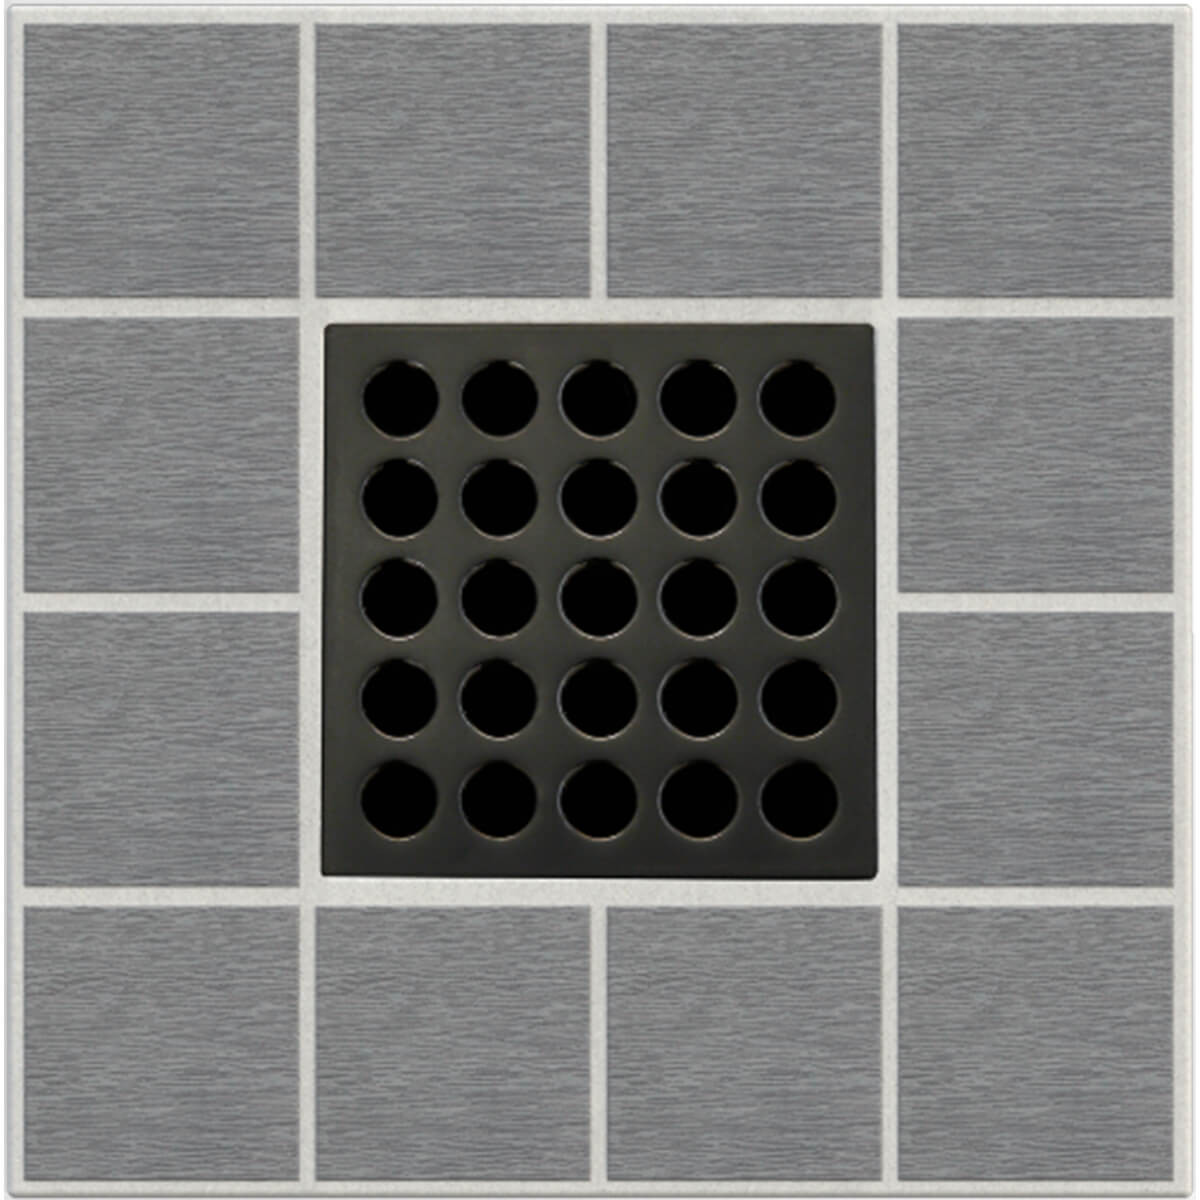 Oil Rubbed Bronze Ebbe Grates For Shower Drains E4407